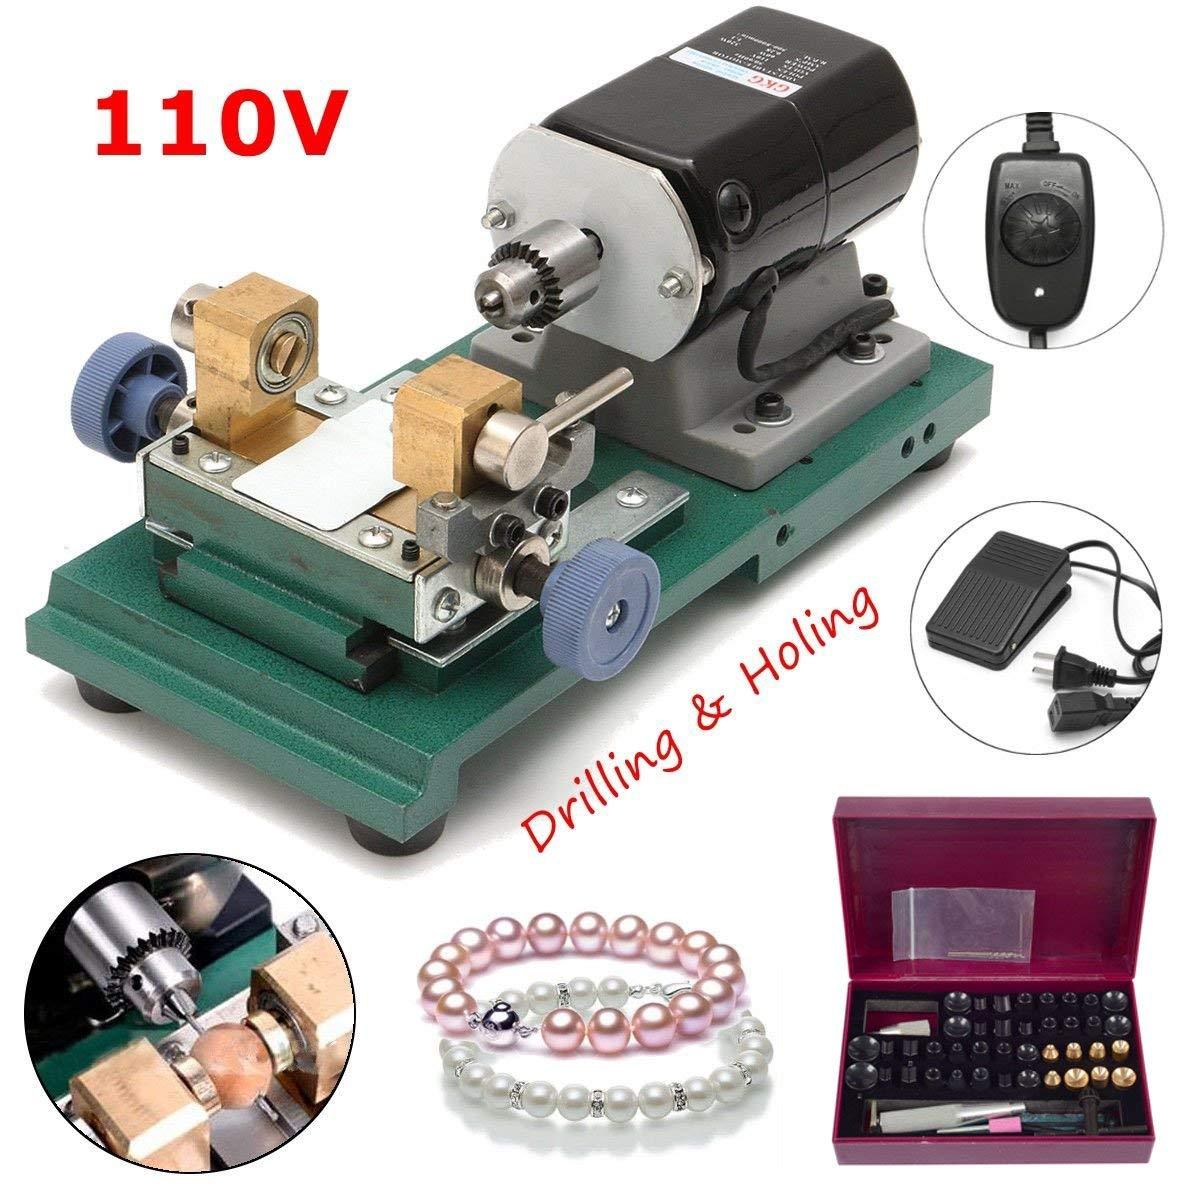 Adoner 200W Full Set Jewelry Pearl Stepless Drilling Holing Machine Driller Tools USA